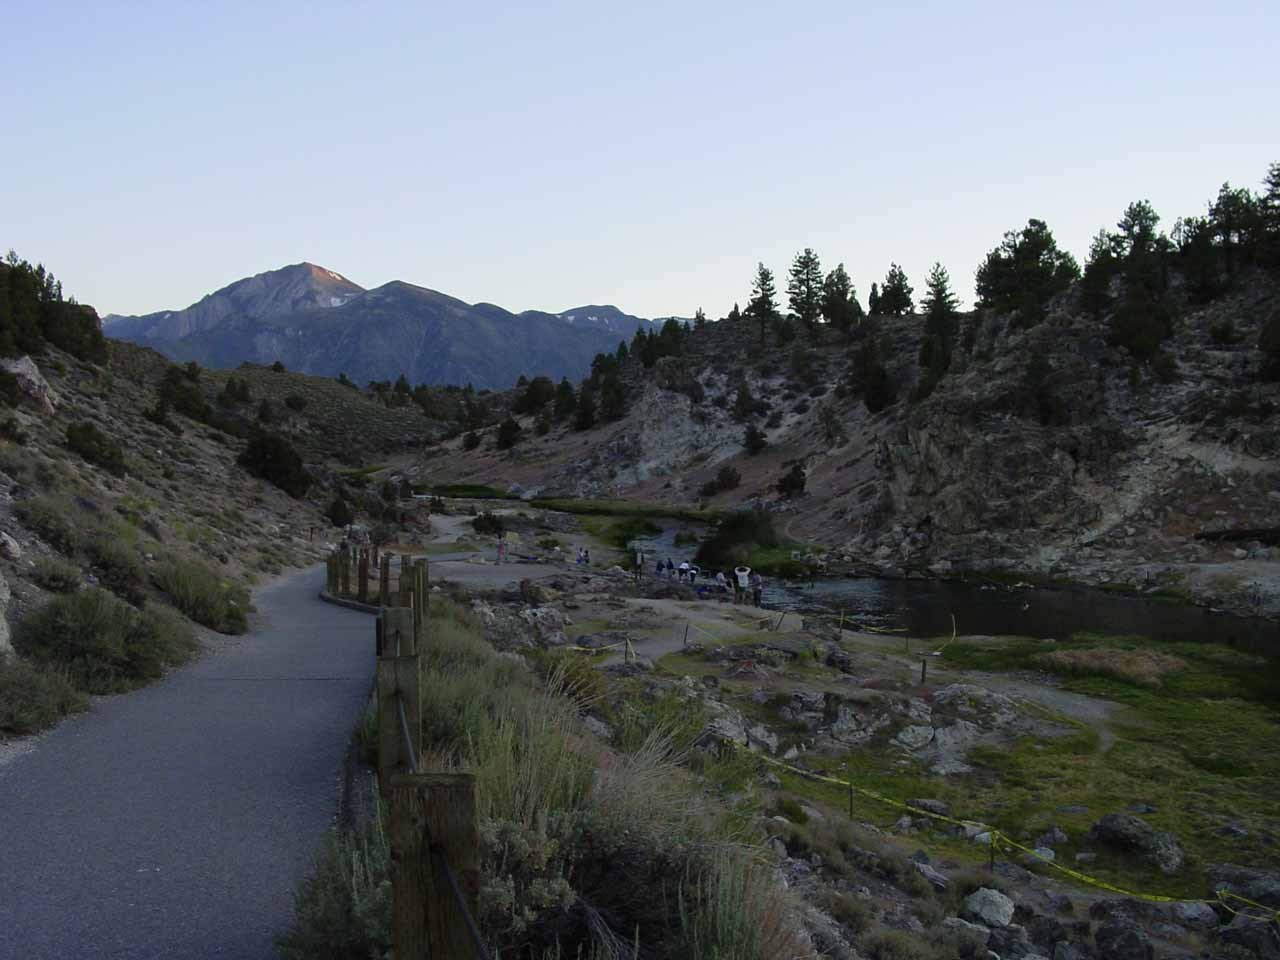 Quite close to Horsetail Falls across the Hwy 395 is Hot Creek, where it was once possible to soak in the naturally geothermally heated water, but these days the water is too hot to enter